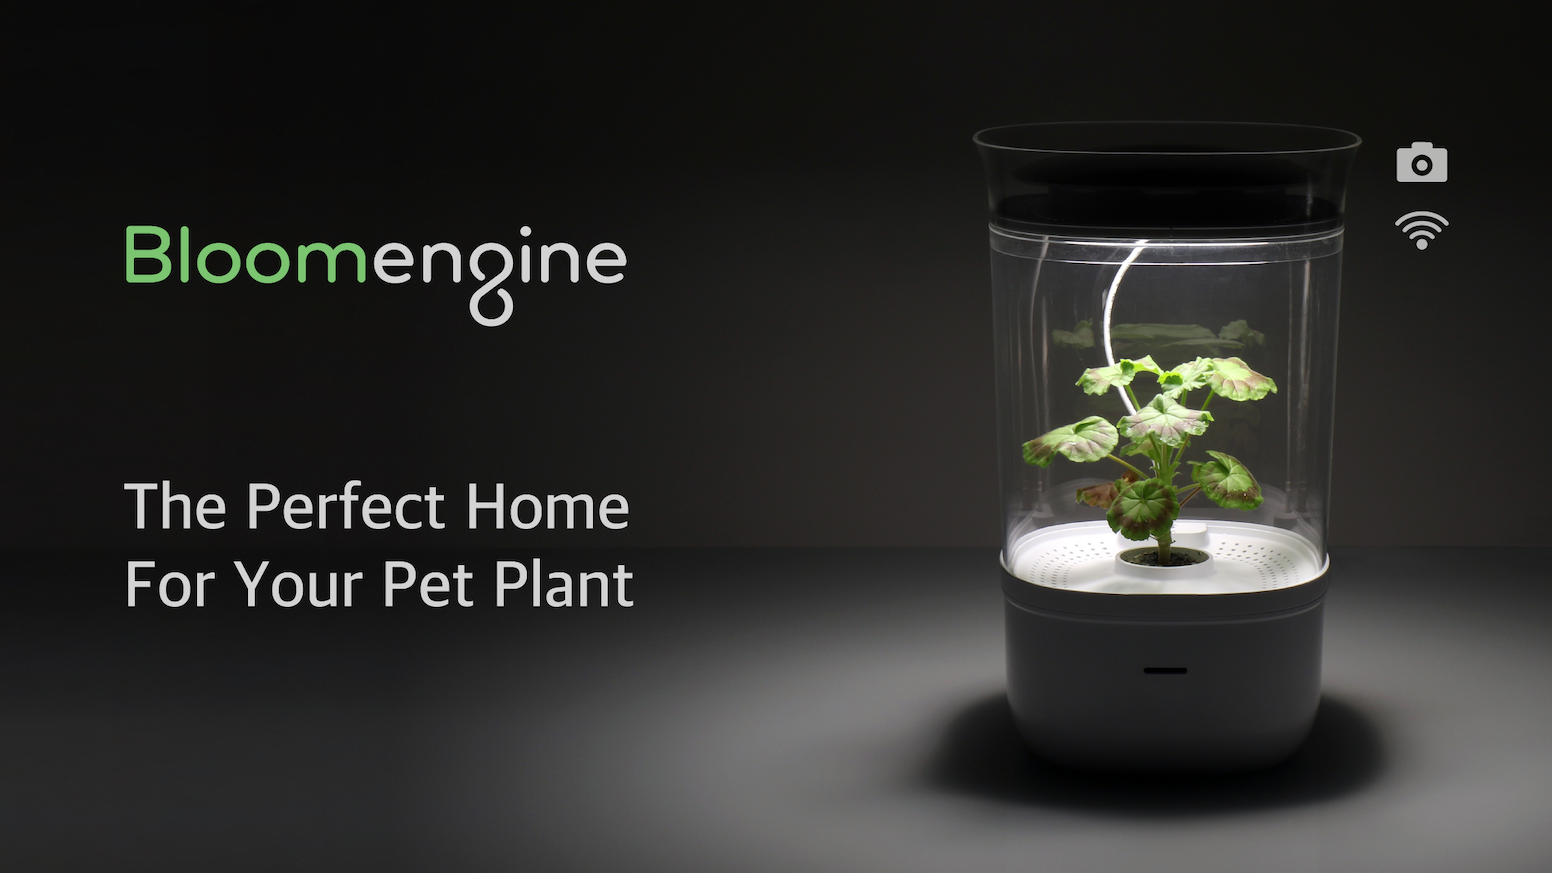 Bloomengine allows you to care for your pet plant stress-free by remotely adjusting water, sunlight, and air circulation levels.